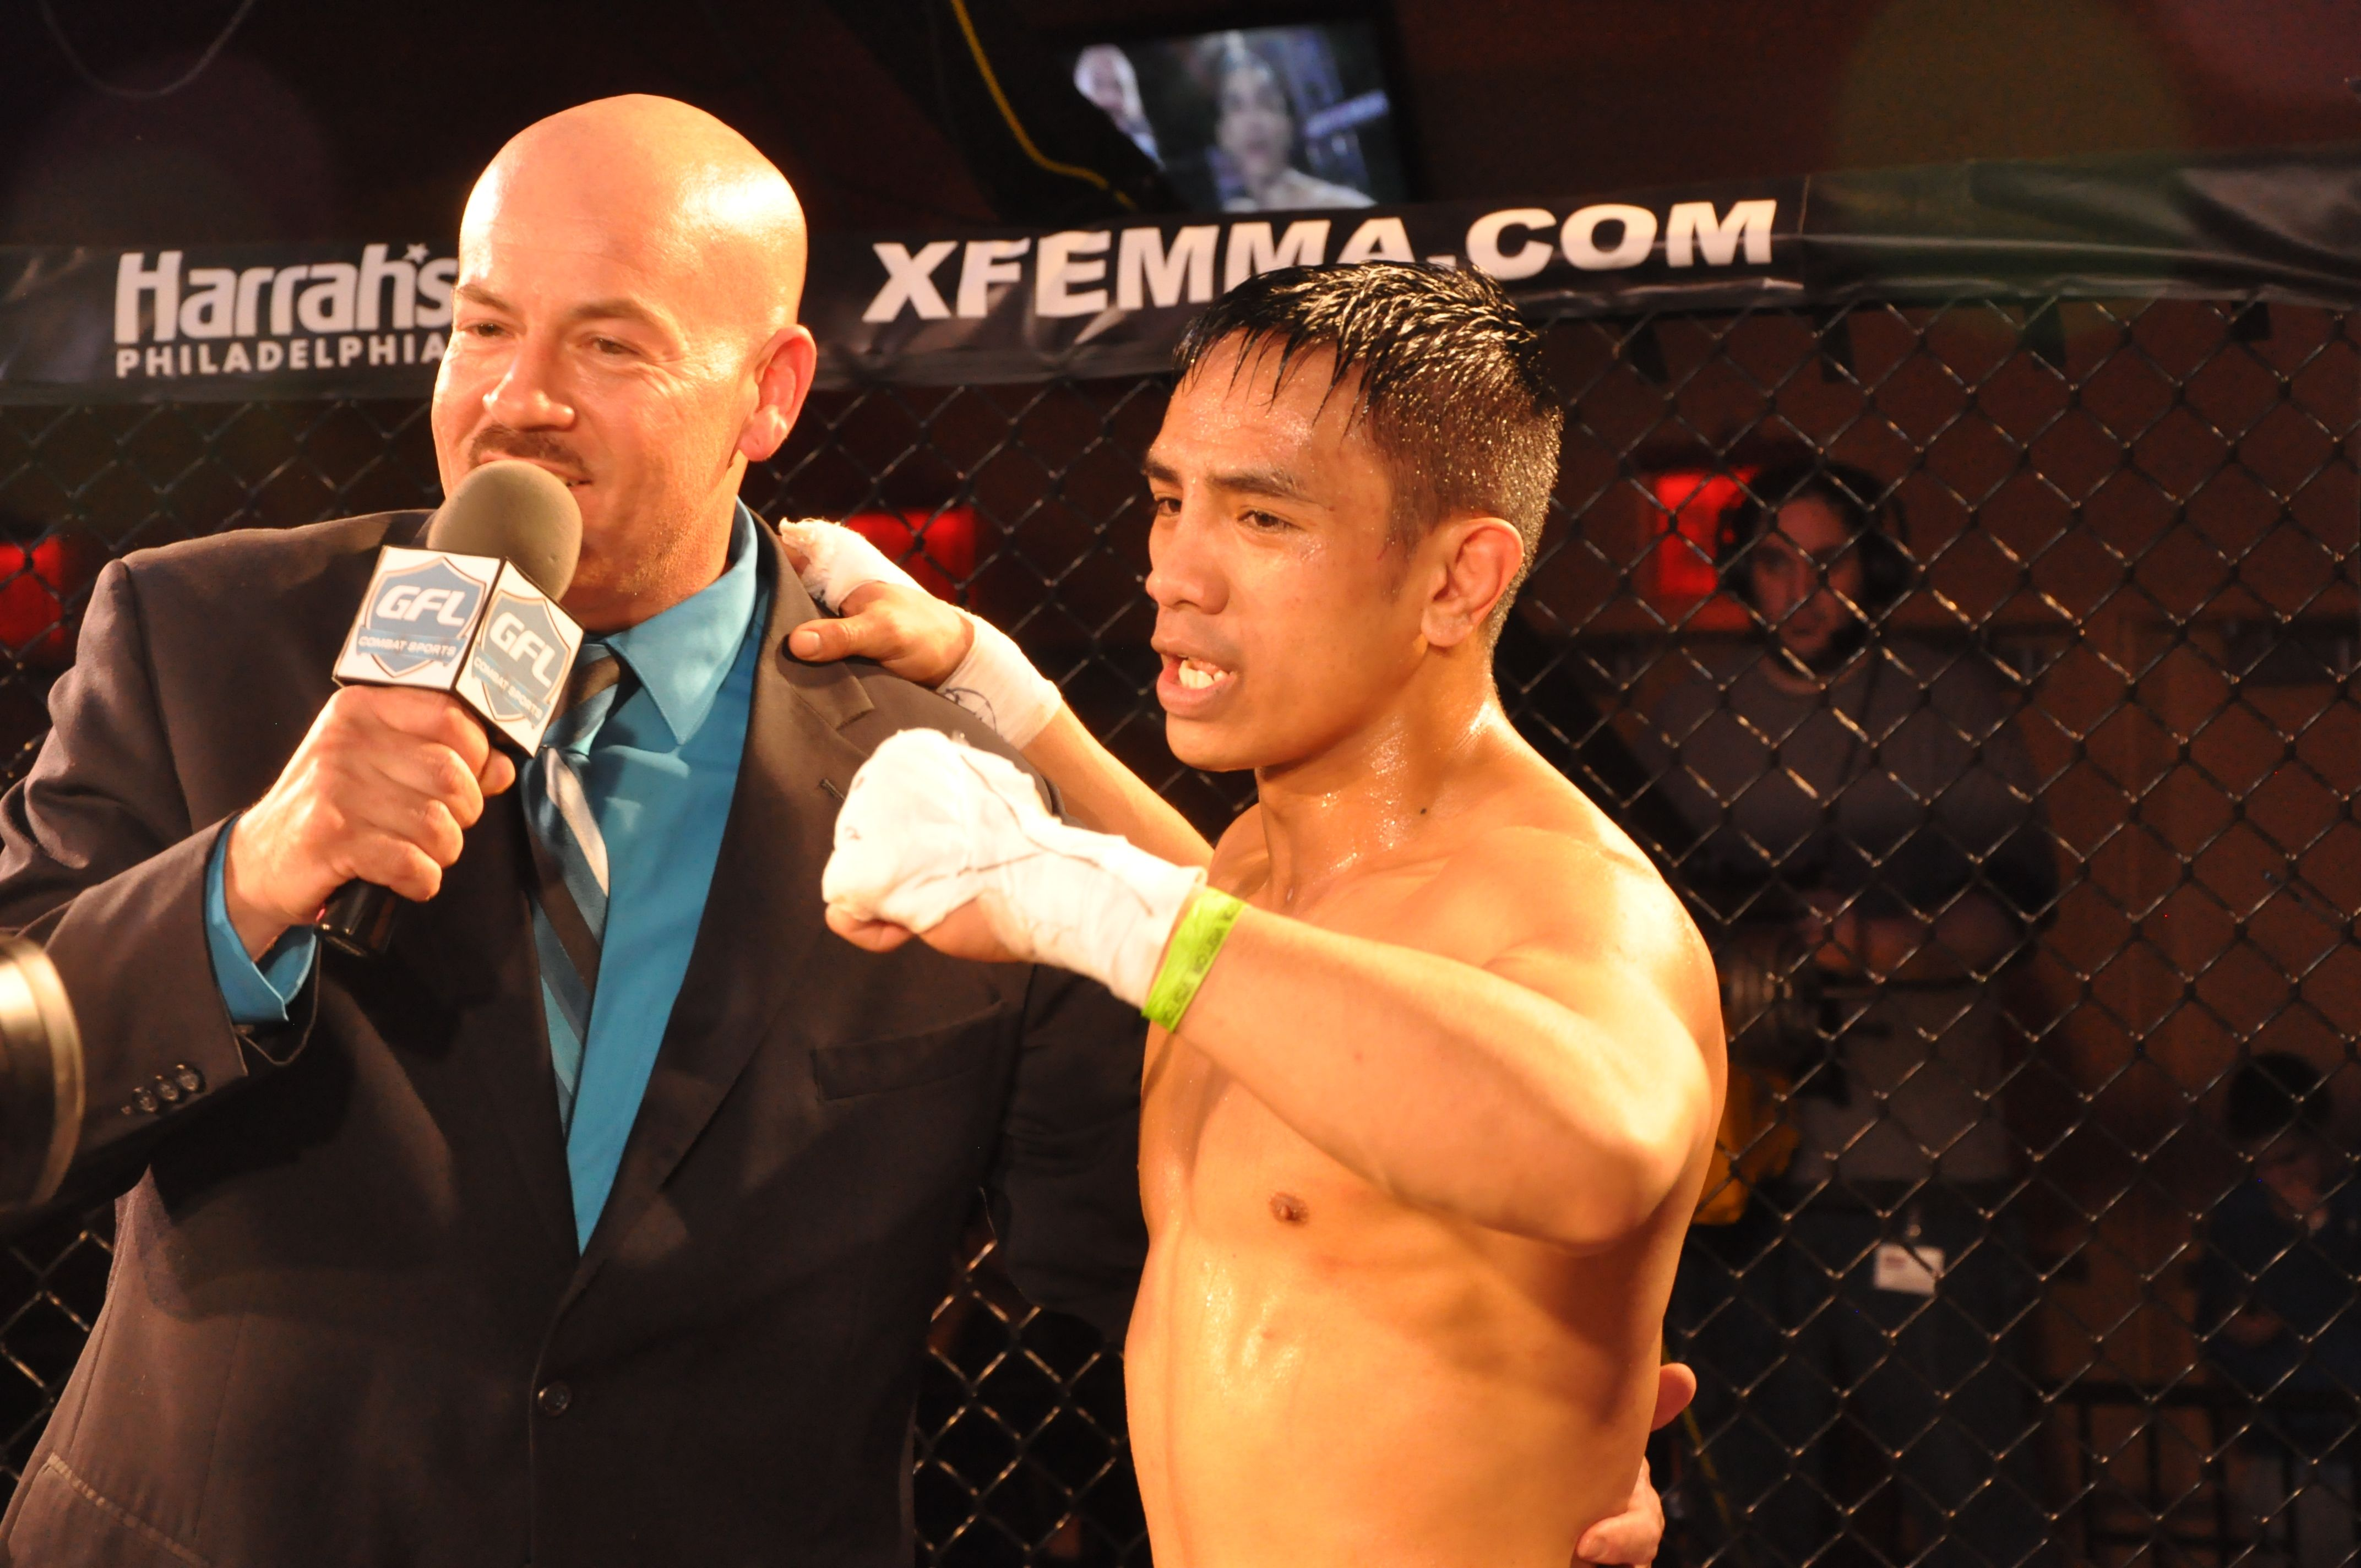 Xfe Cage Wars 20 Pro 125lb Fighter Drew Aguilar Http Www Facebook Com Pages Xfe Cage Wars 239870506054351 Mma Fighters Mma Fighter